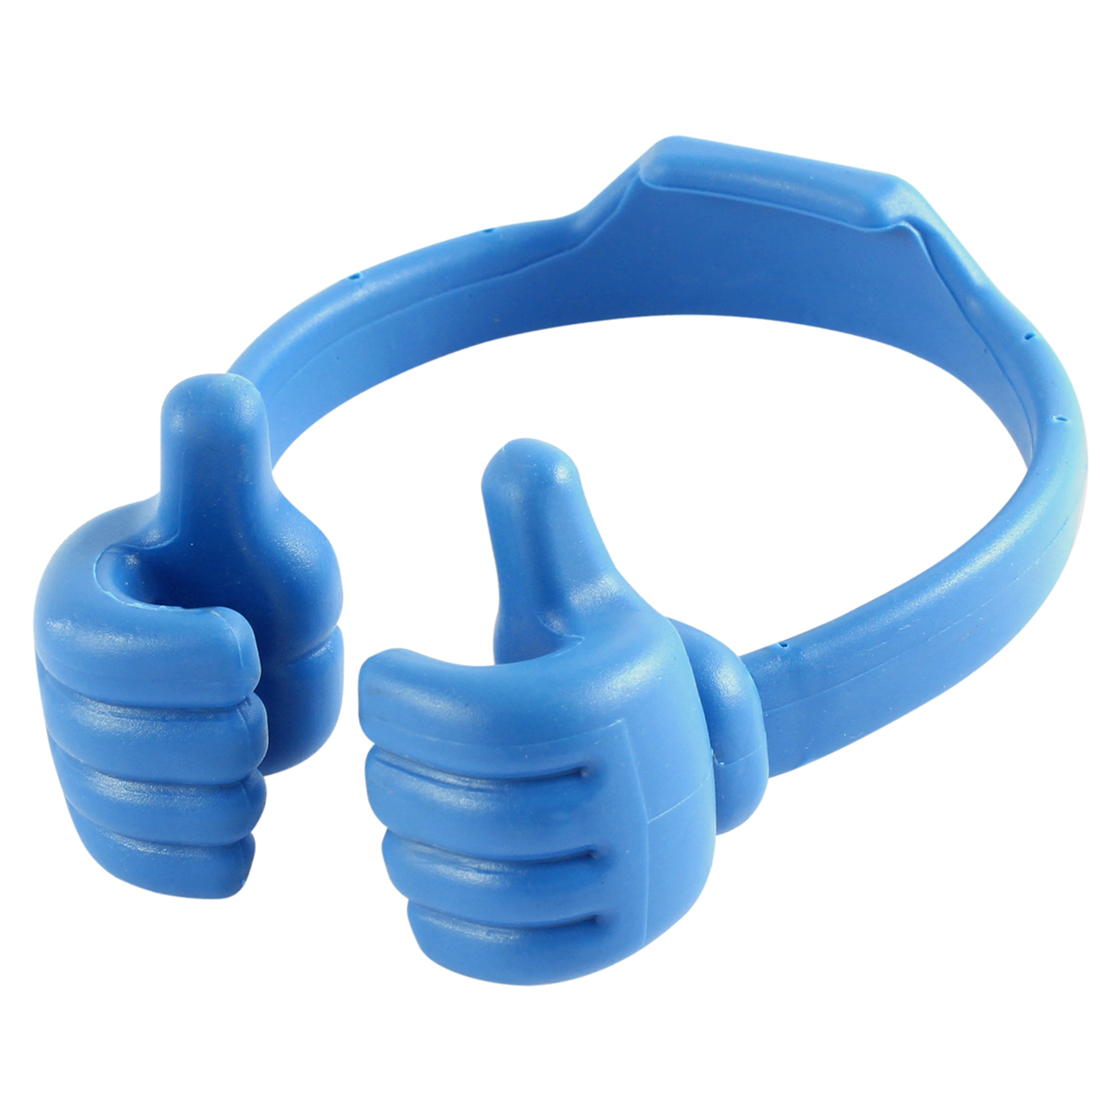 Unique Bargains Adjustable Blue Plastic Thumb Shaped Stand Holder for Cell Phone Mp3 MP4 Tablet